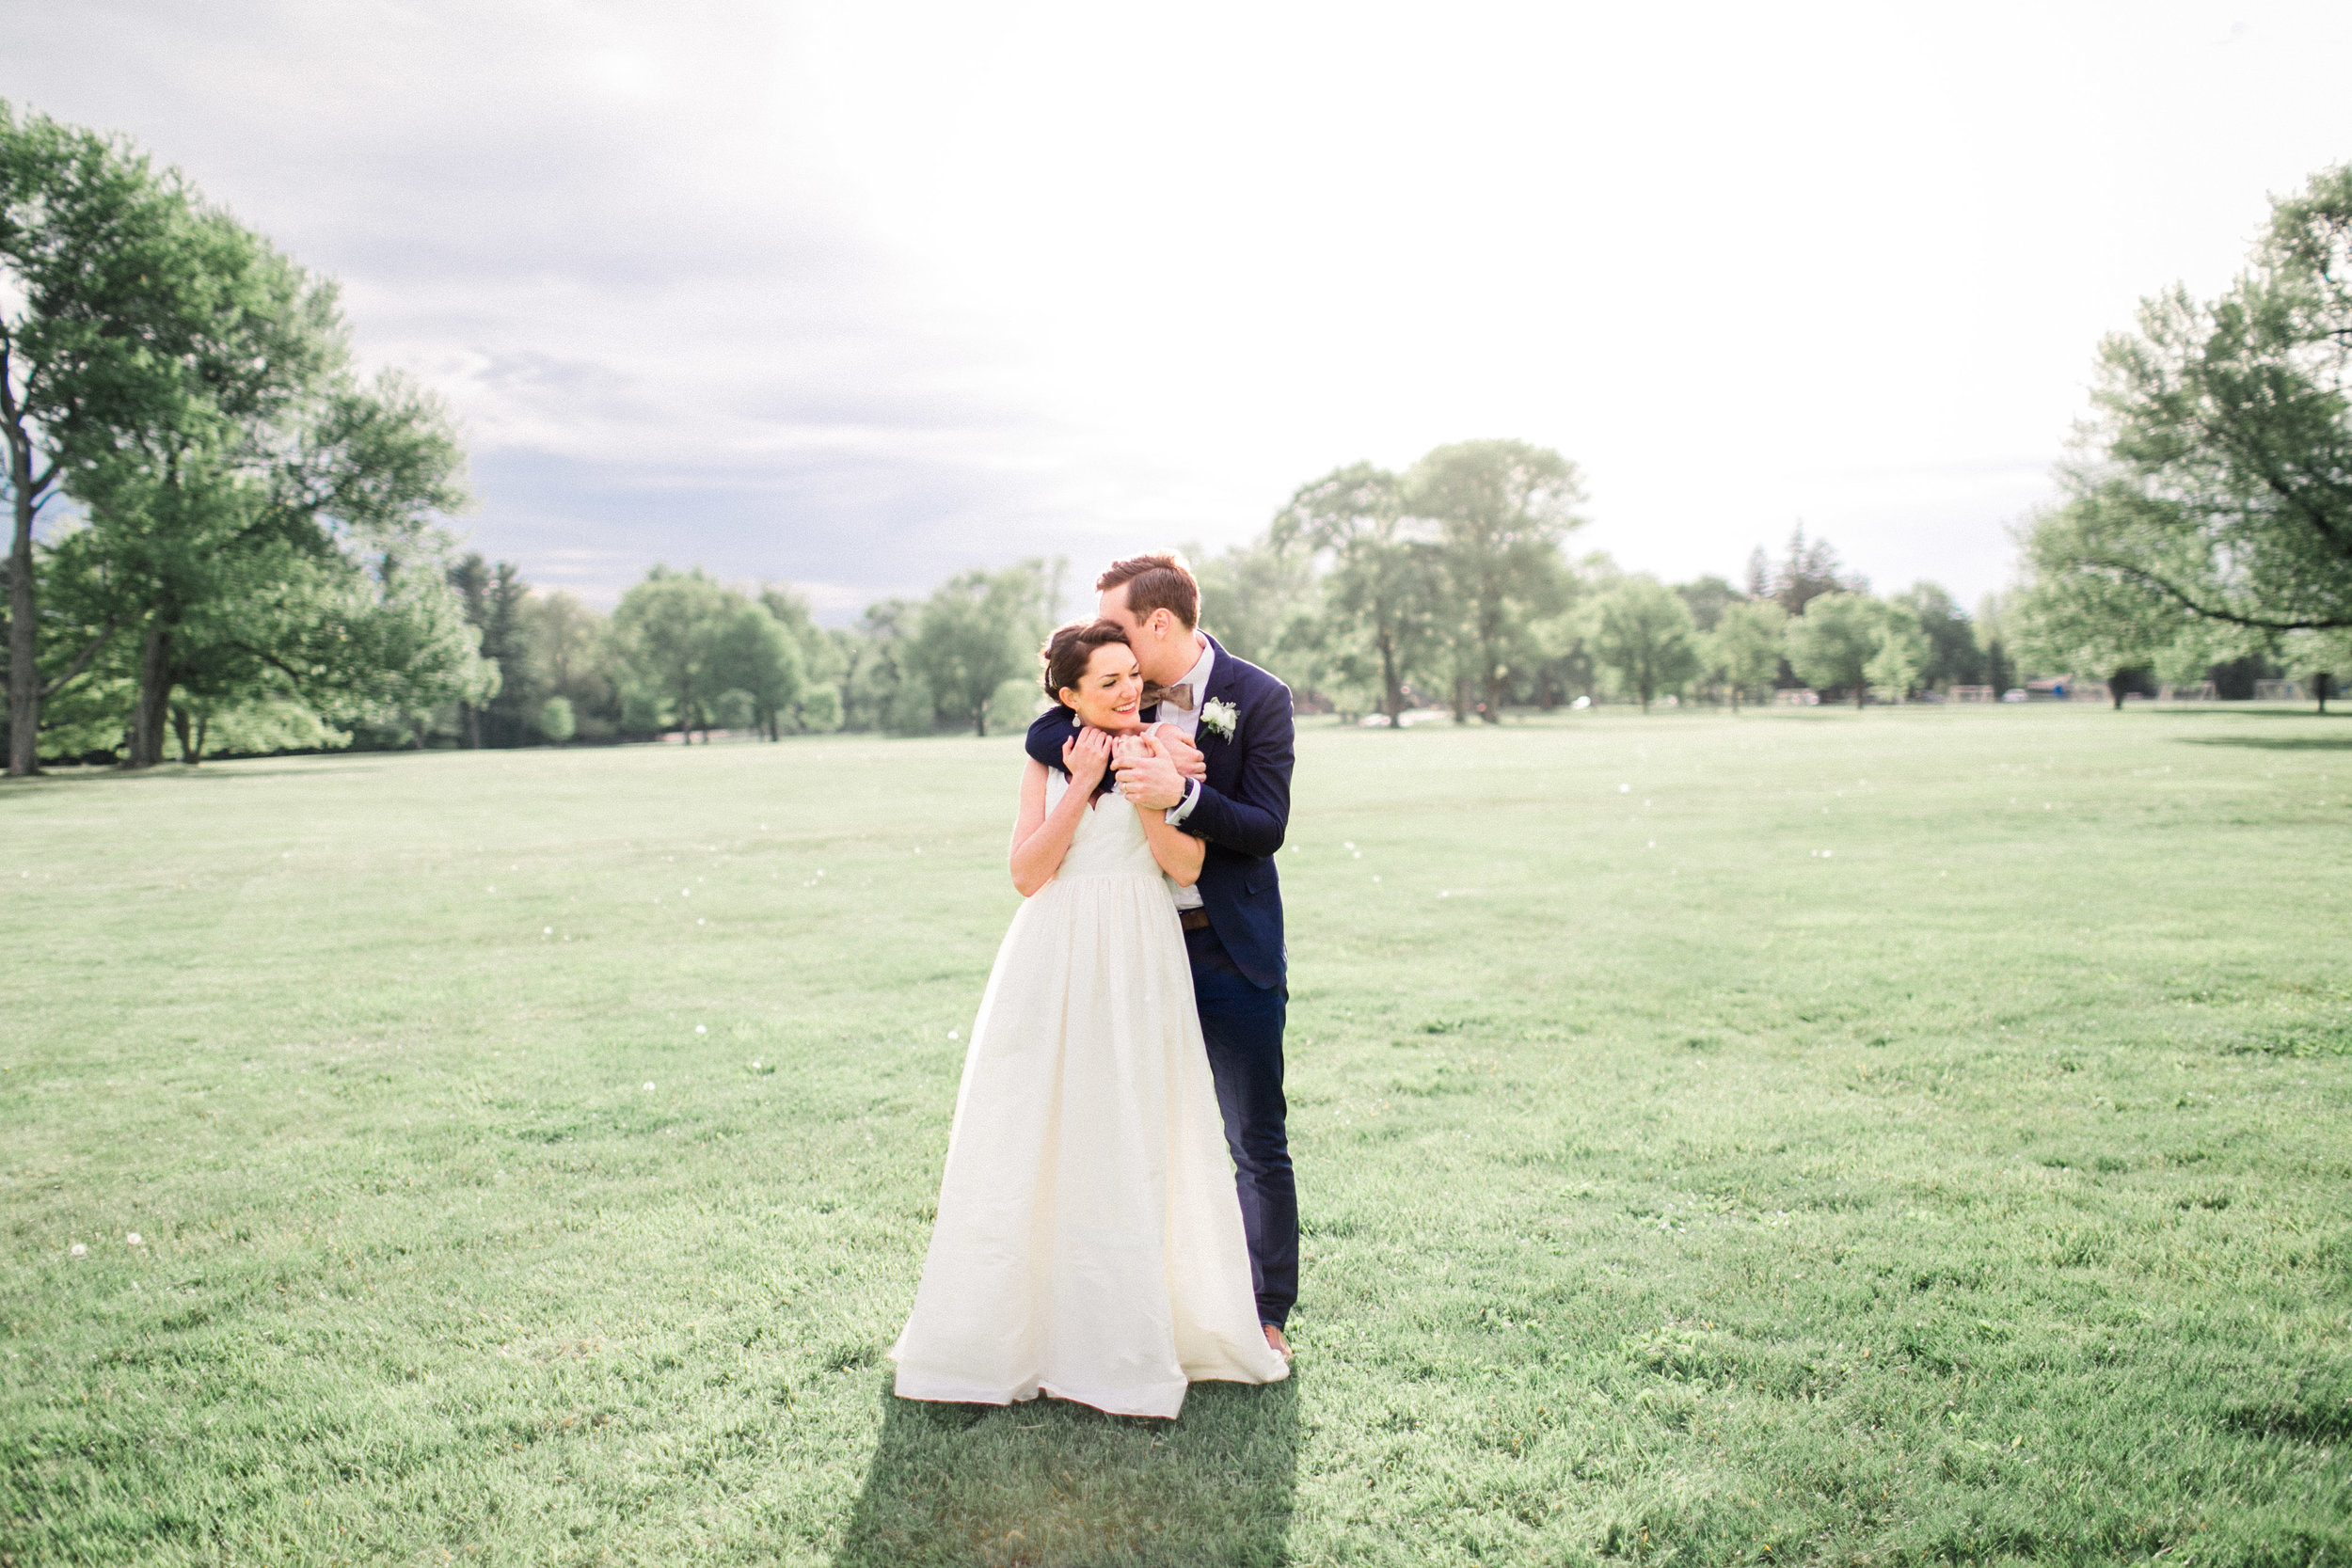 mayden photography weddings-113.jpg